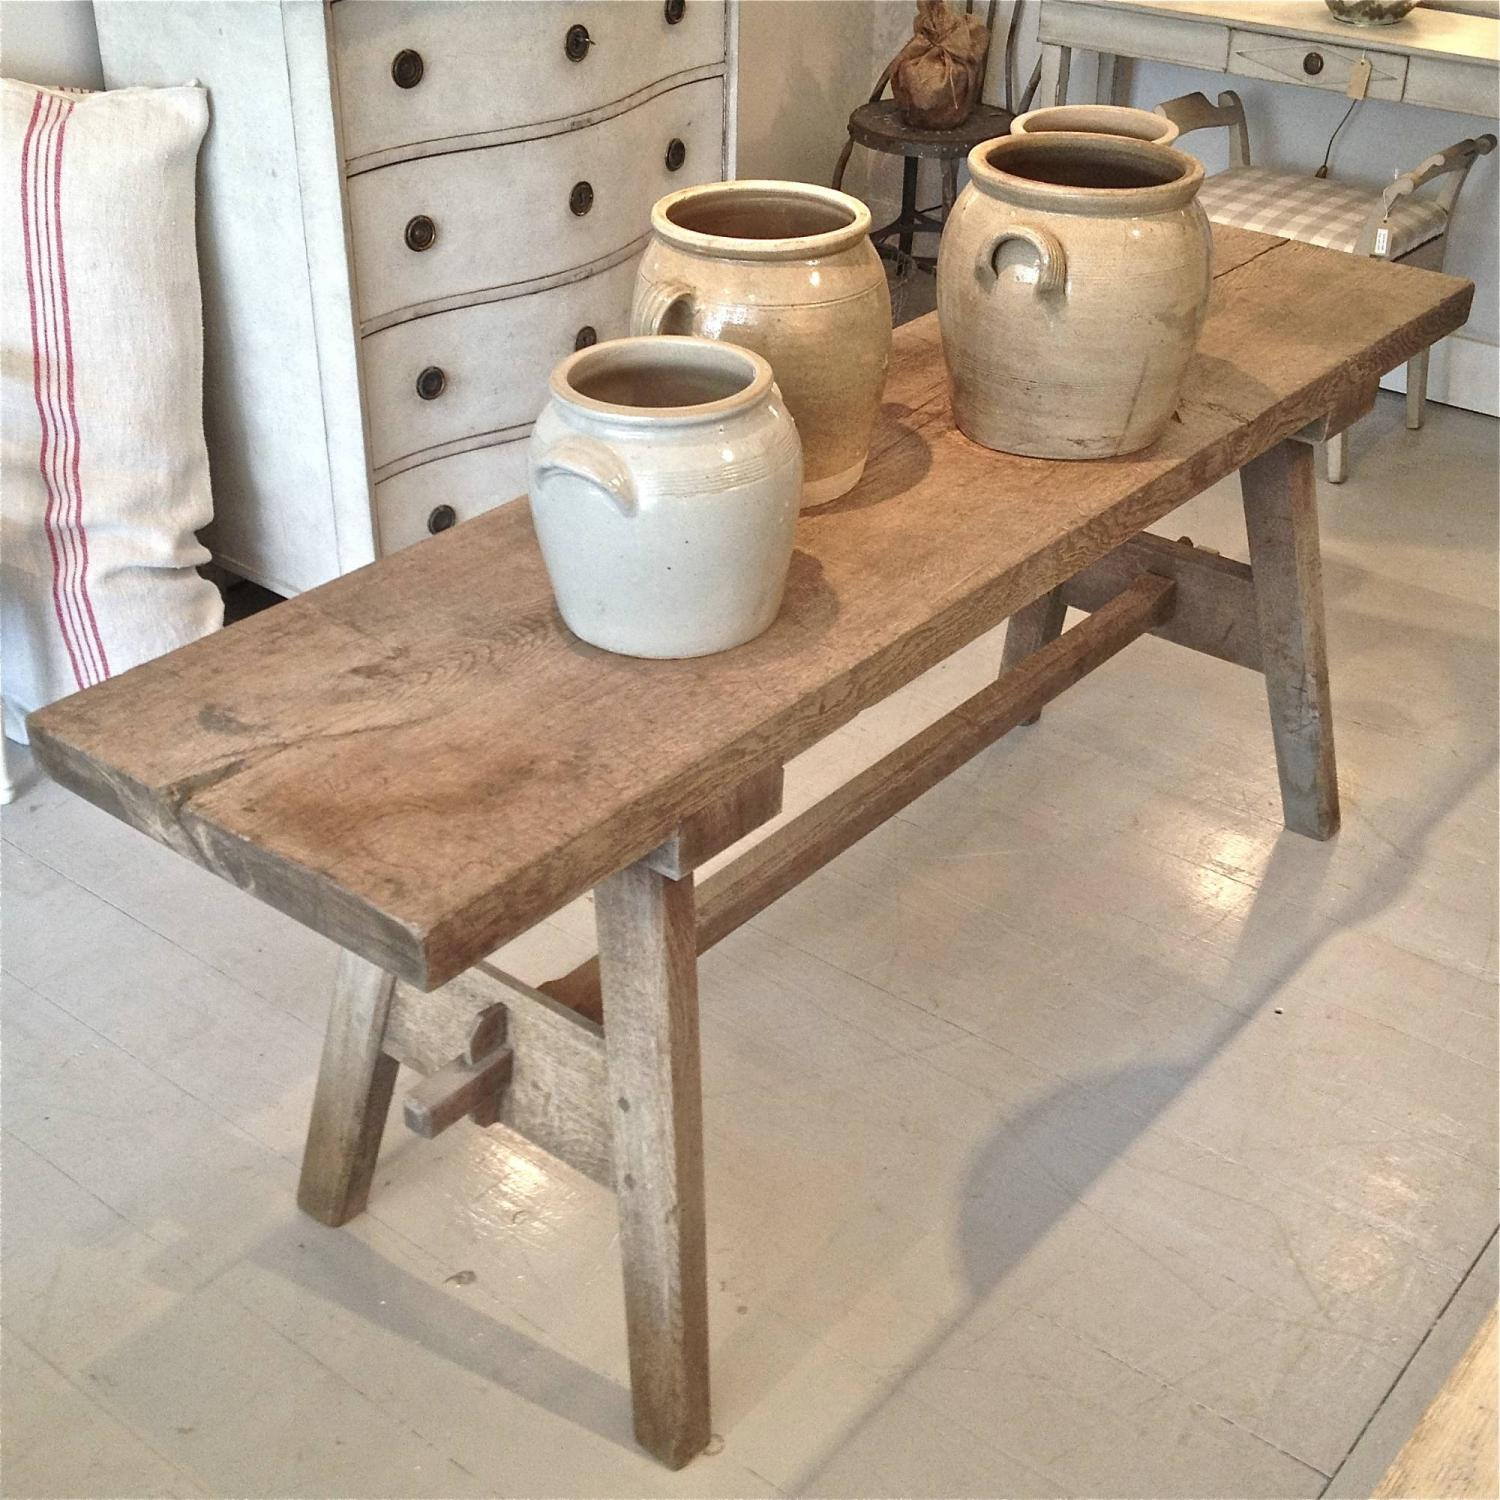 ... 19TH CENTURY FRENCH OAK TRESTLE CONSOLE TABLE   Picture 2 ...